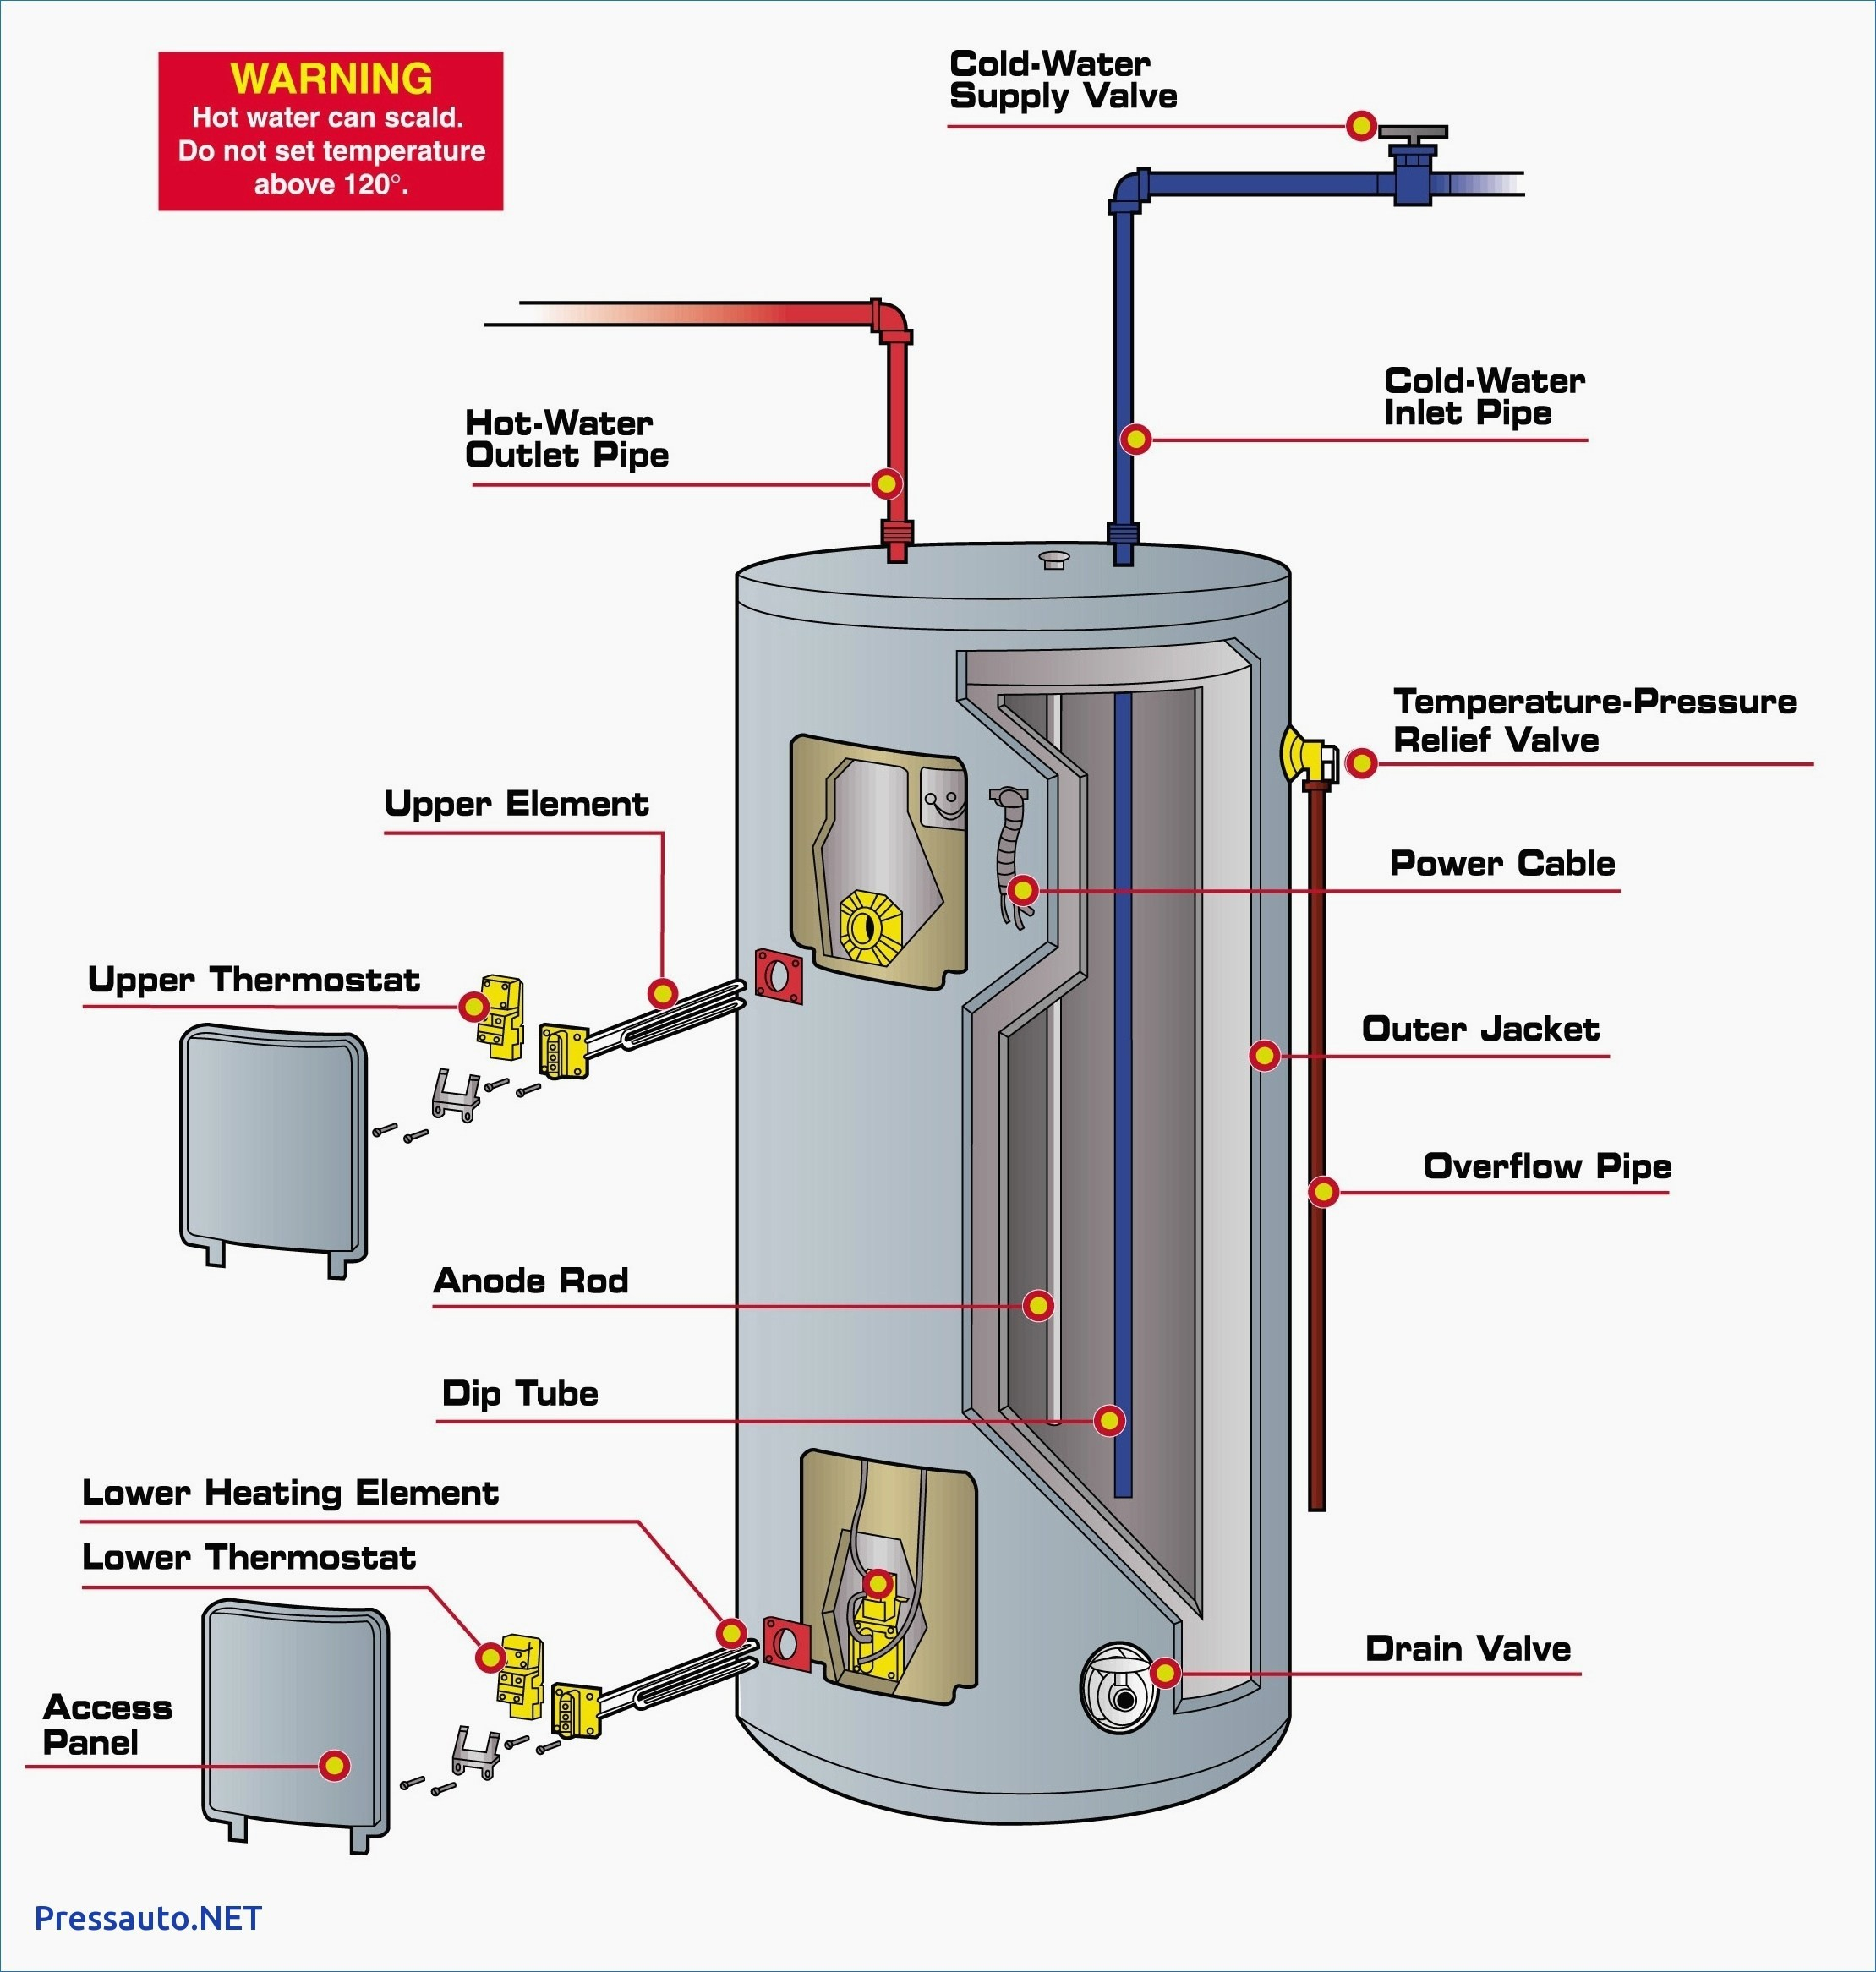 electric water heater wiring diagram Download-Wiring Diagram Electric Water Heater Fresh New Hot Water Heater Wiring Diagram Diagram 2-k